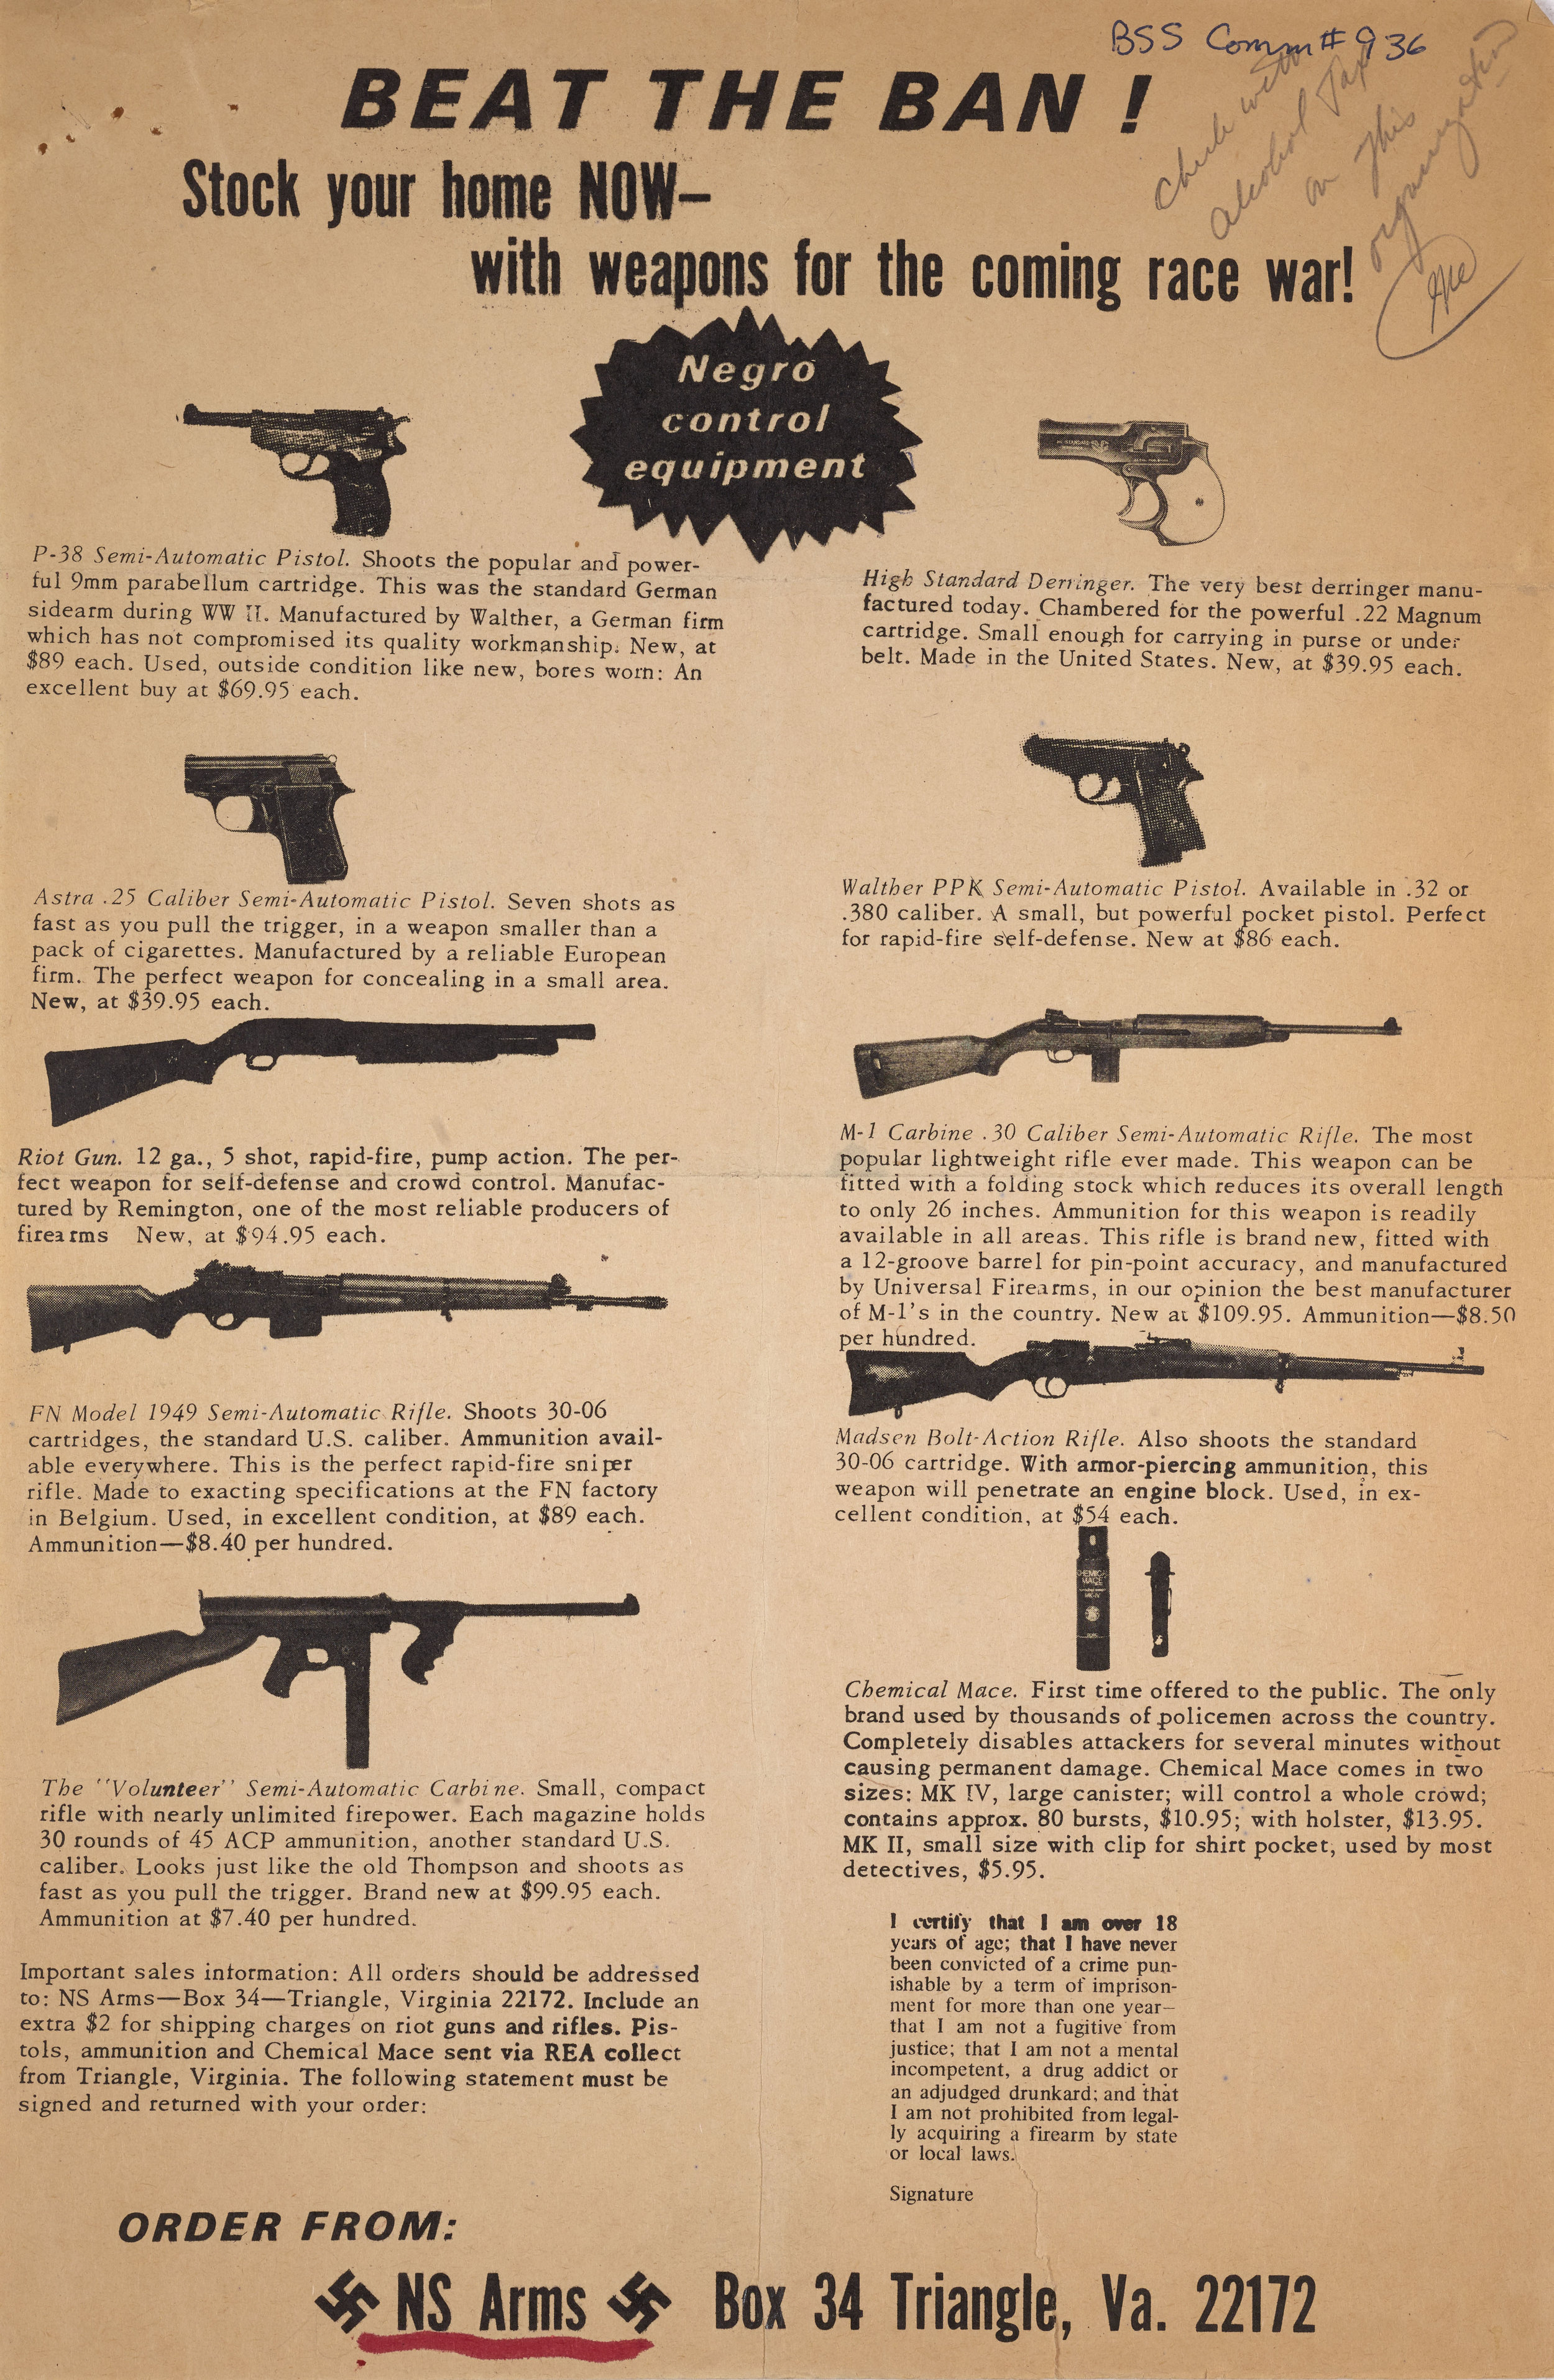 Advertisement for weapons